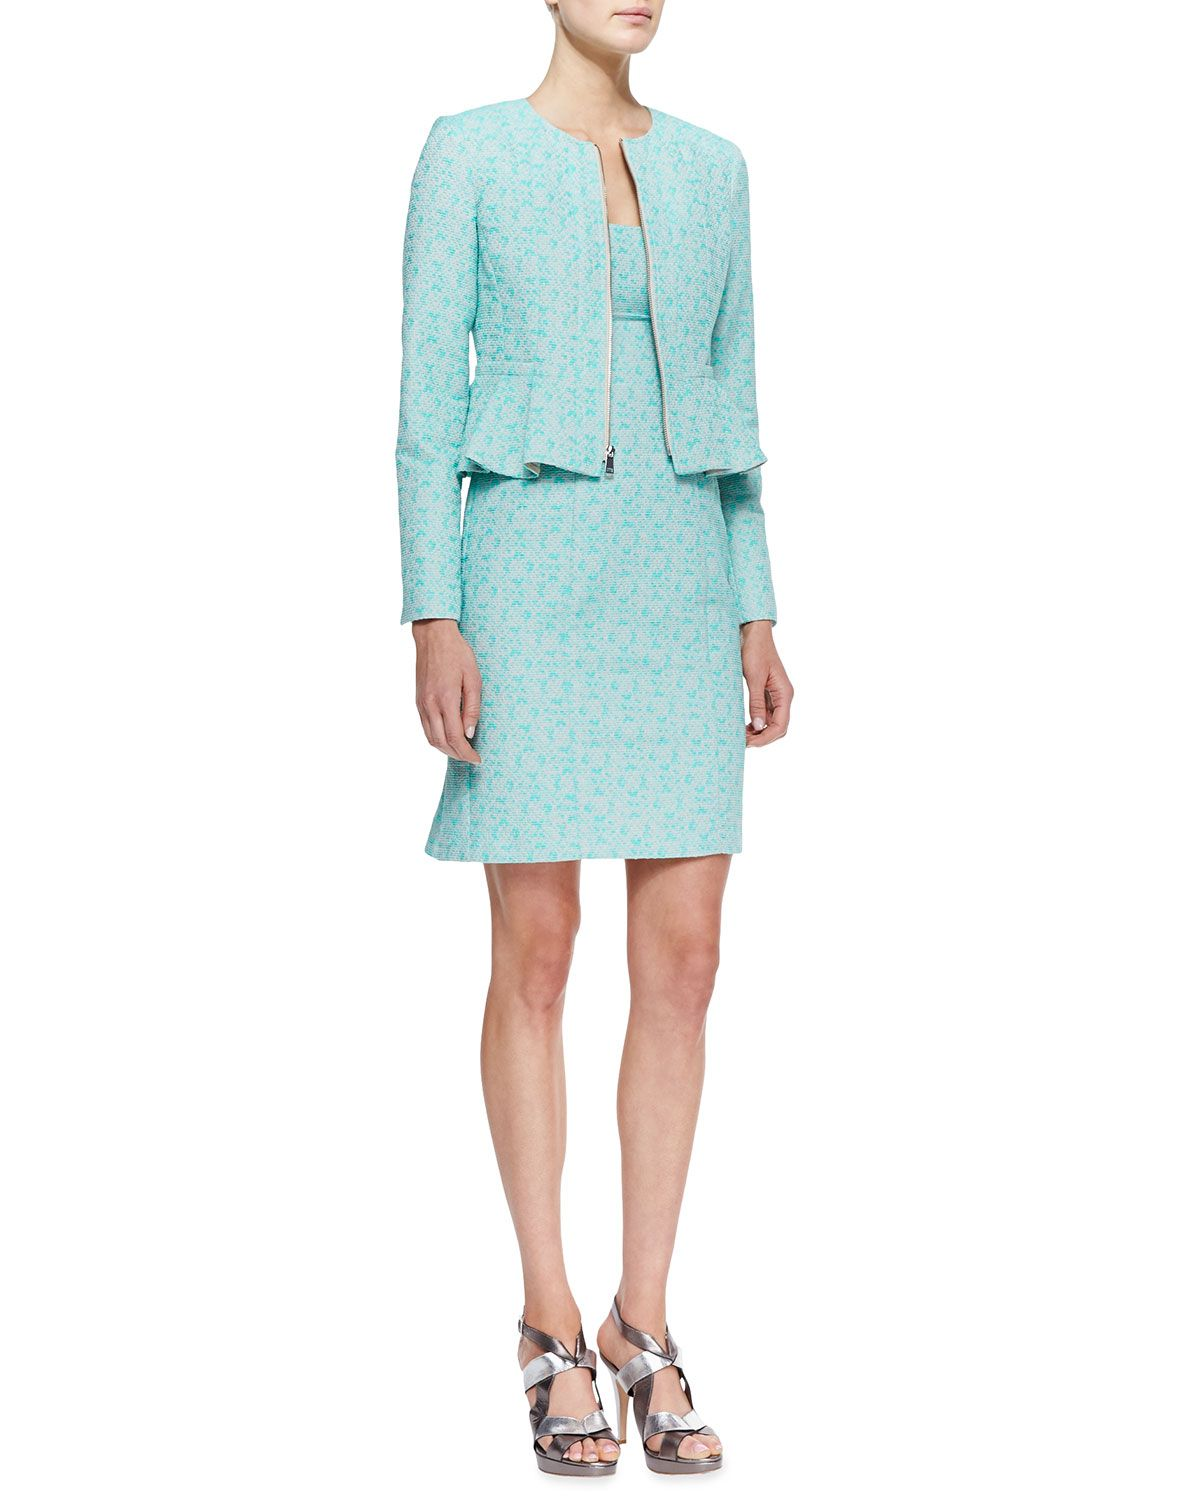 Neiman marcus dresses for weddings  Nanette Lepore Crazy For You ZipFront Jacket u Demure SquareNeck